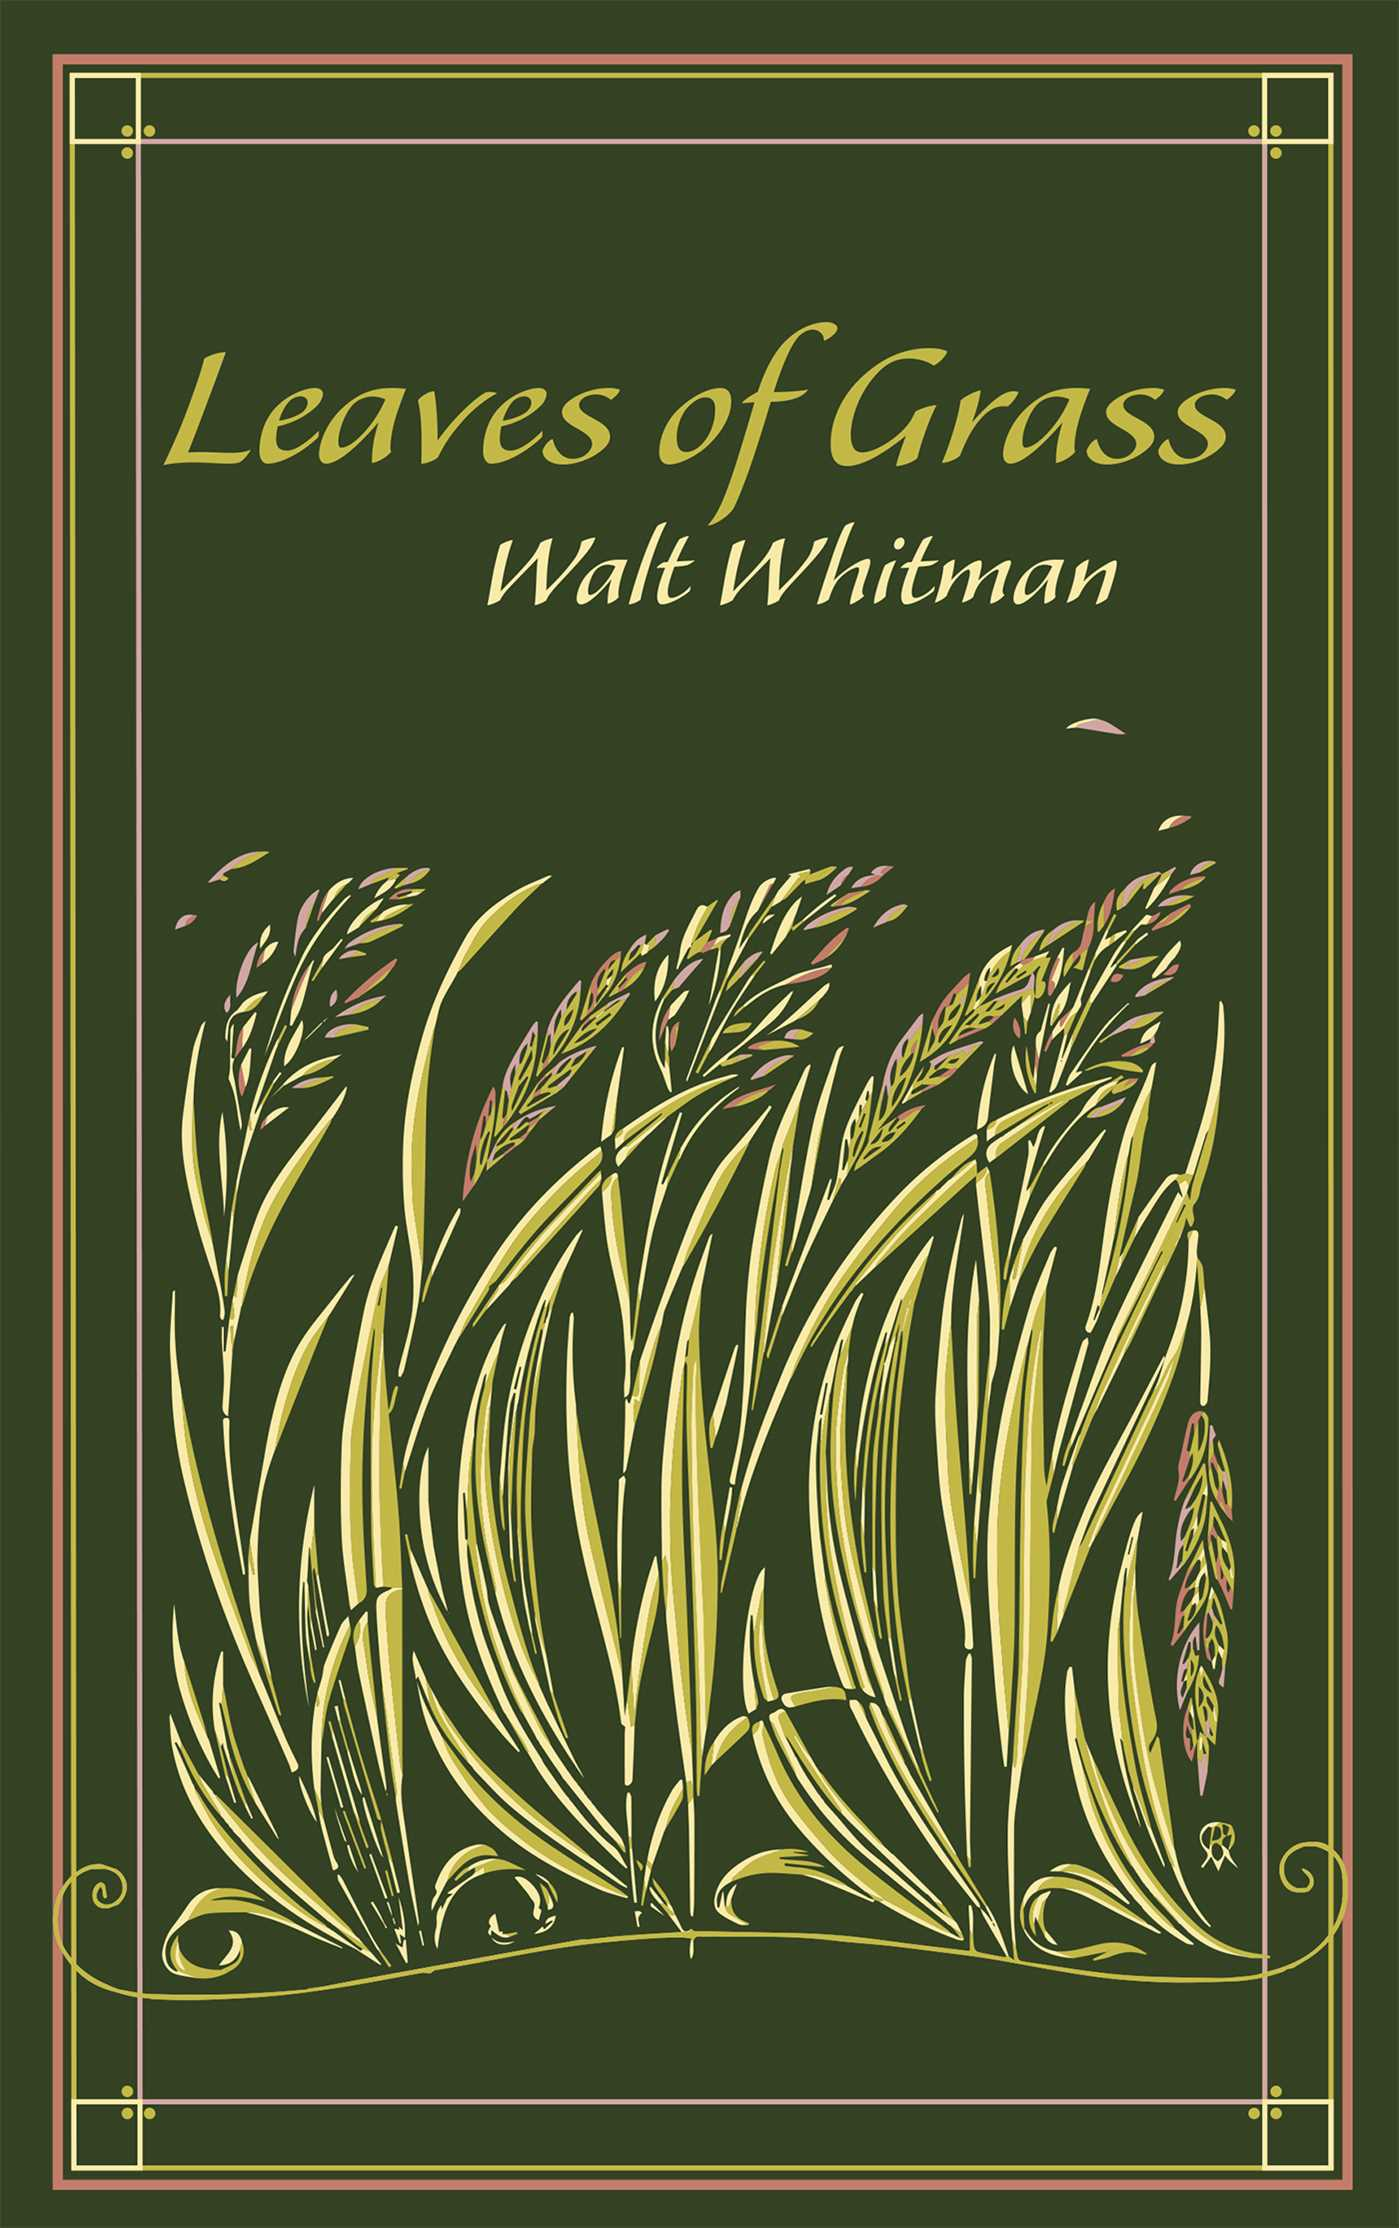 Leaves of grass 9781684125845 hr